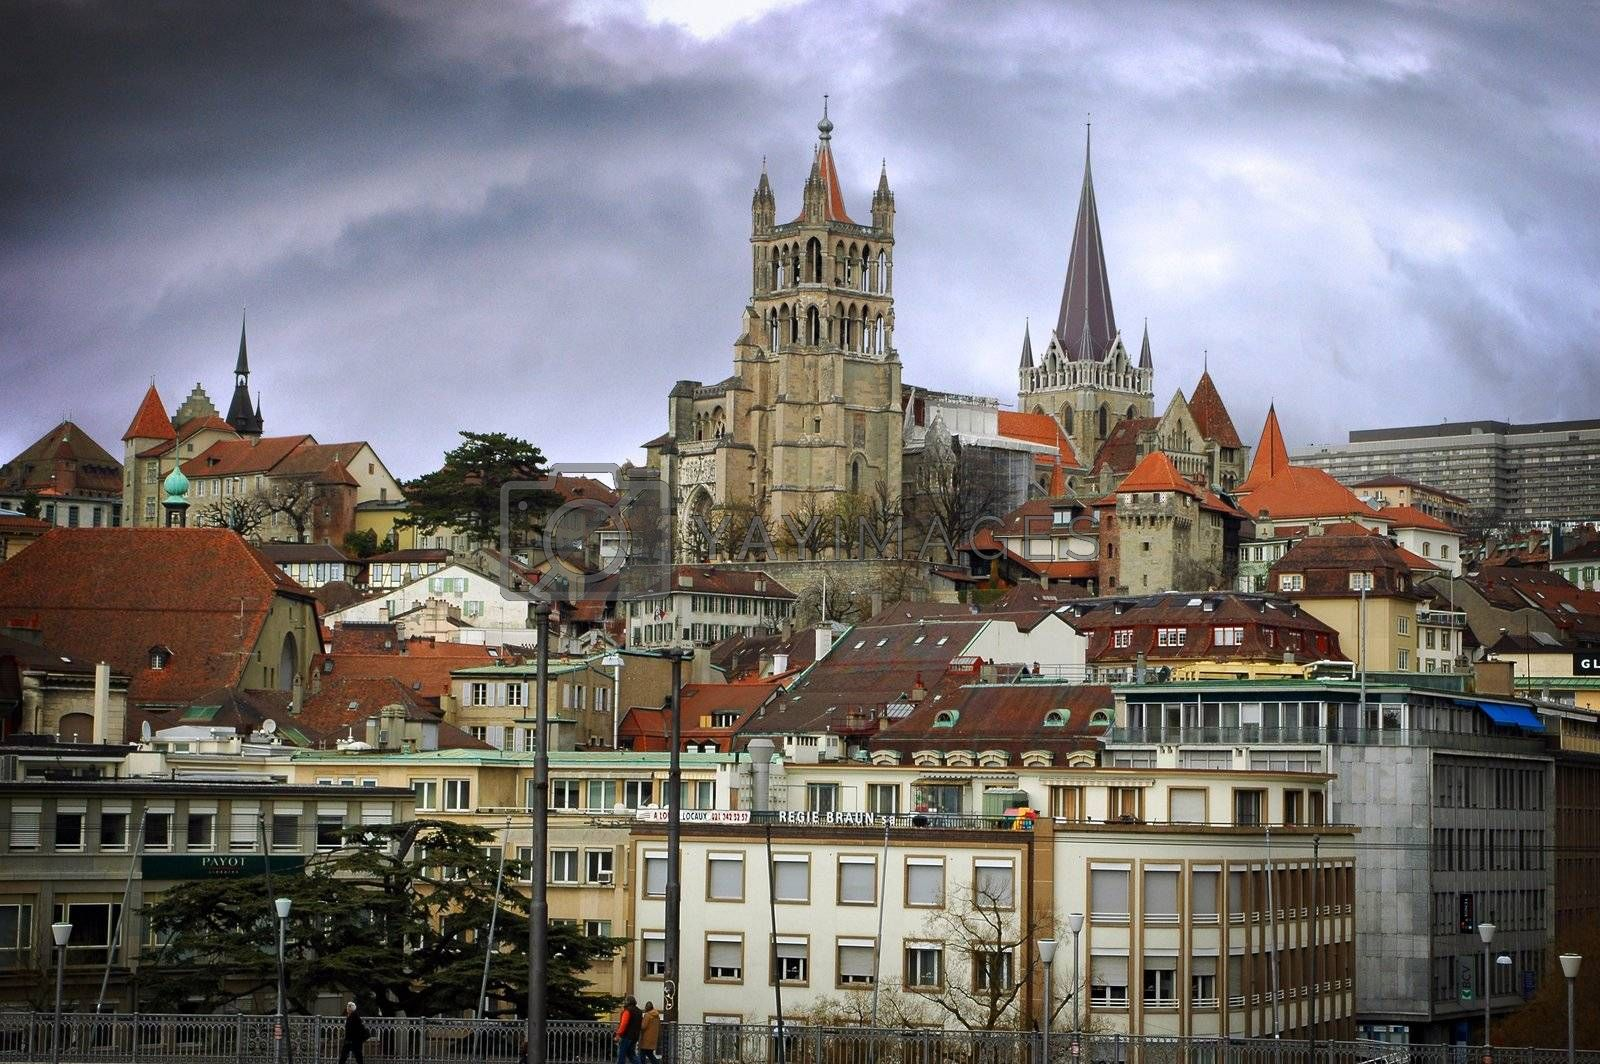 Landscape image of Lausanne showing steeples with a dramatic sky.